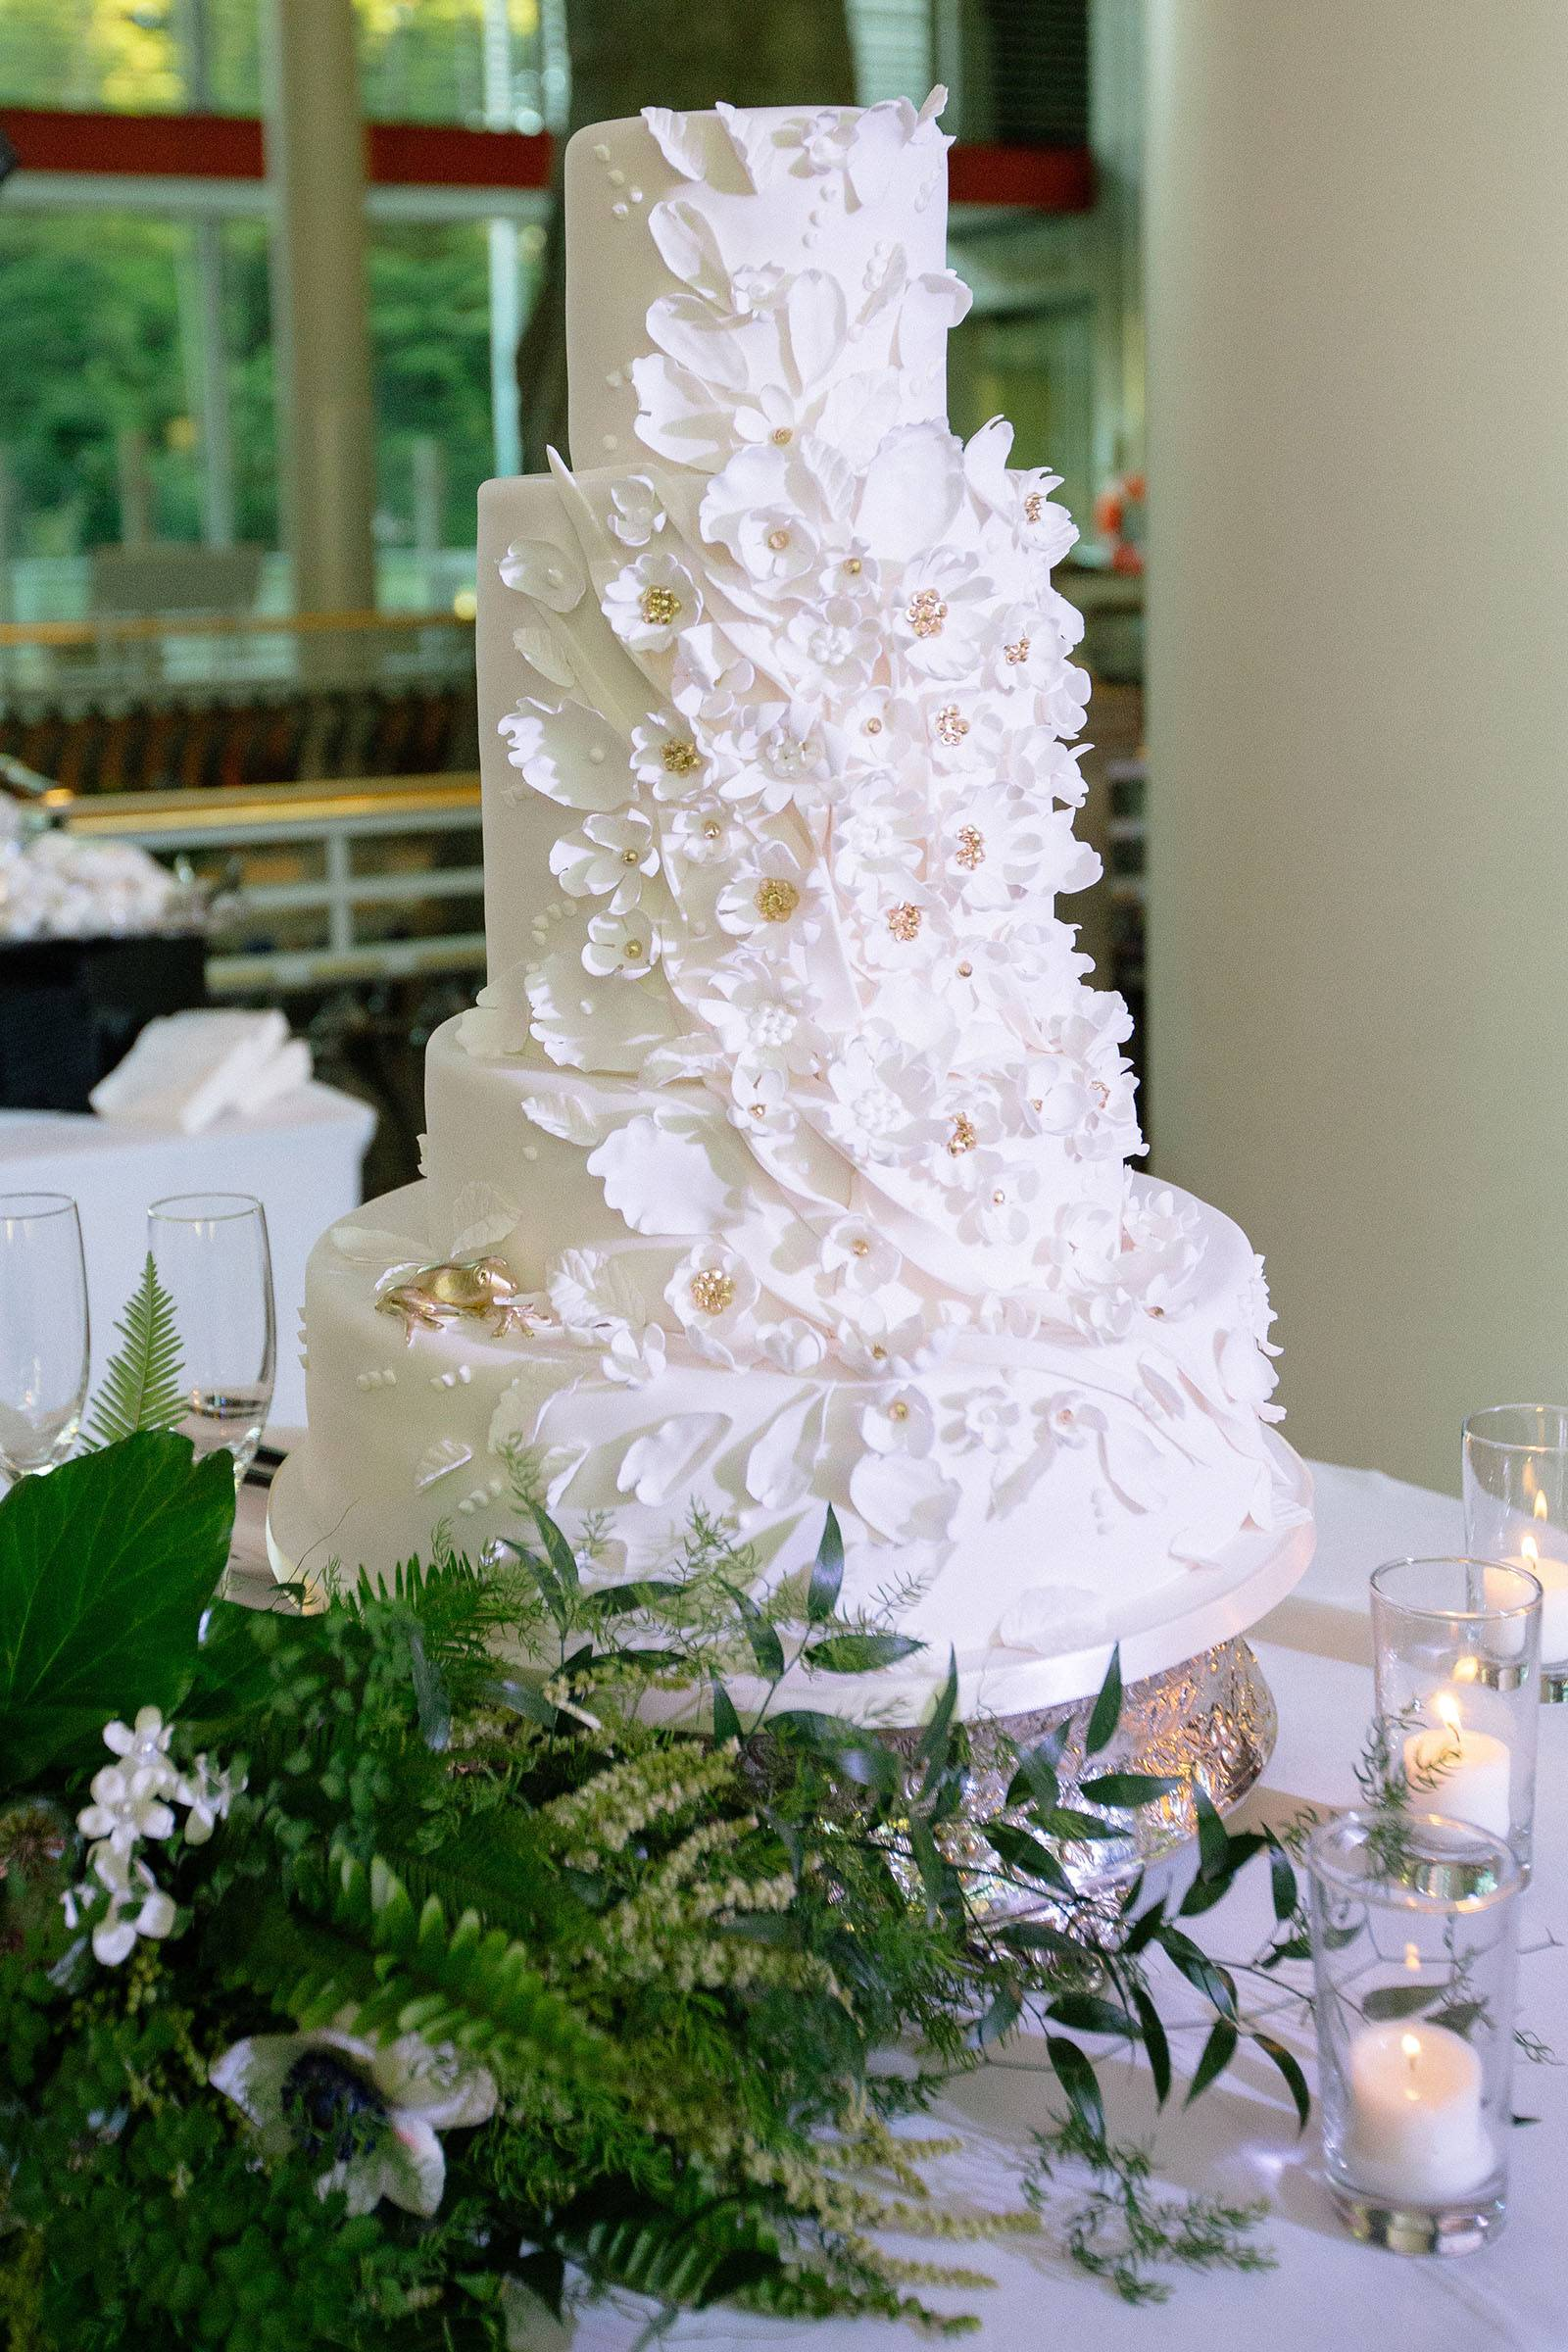 Three tiered wedding cake with white petal decorations and gold accents.